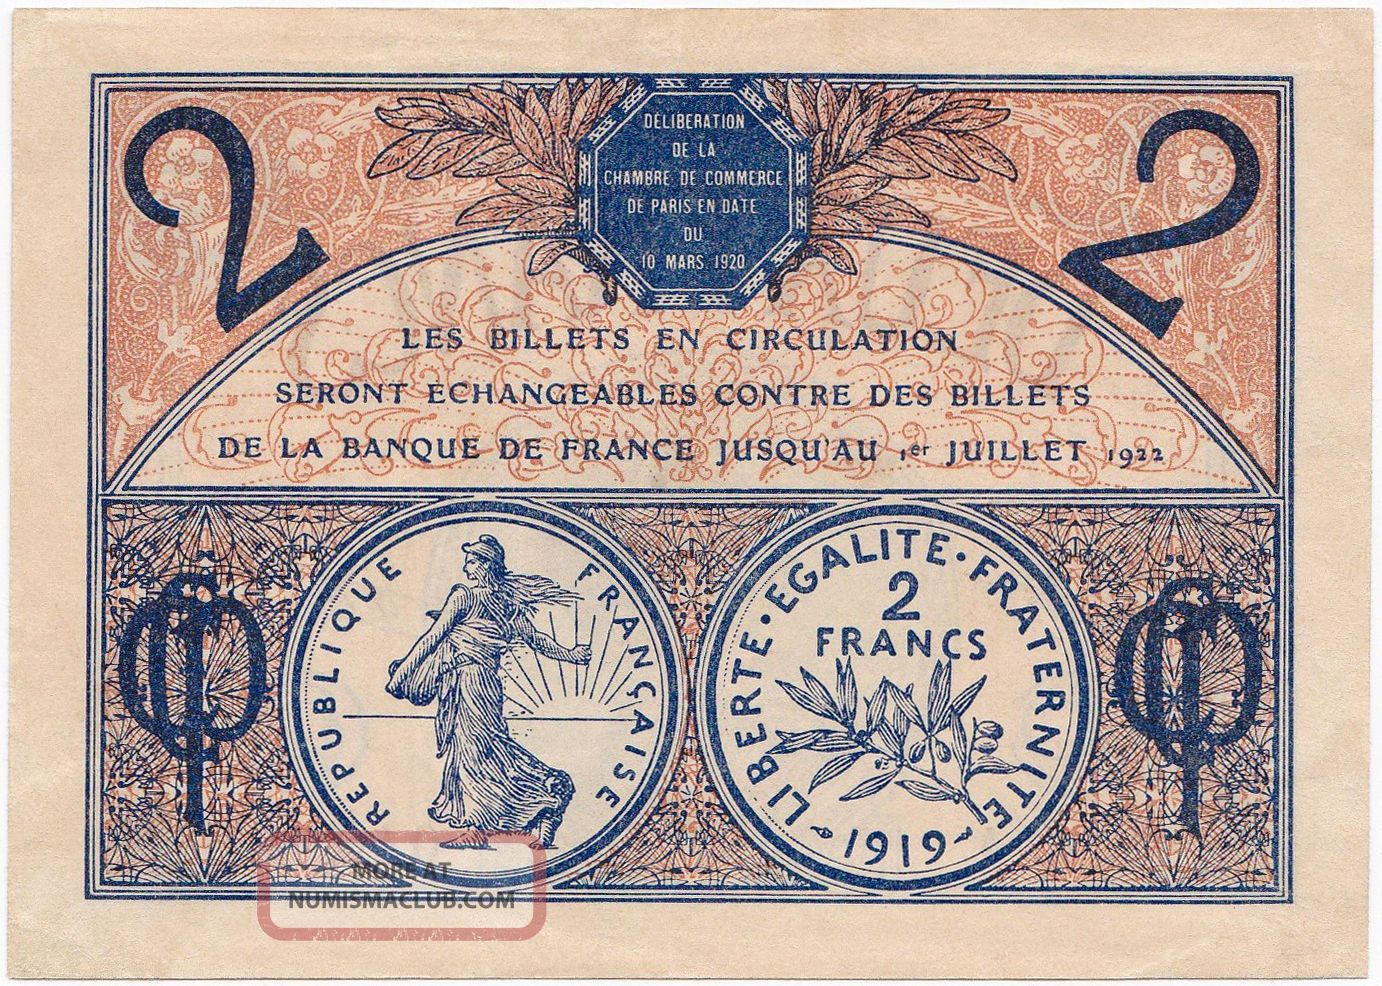 France 2 francs 1919 1922 xf chambre de commerce de paris for Chambre de commerce de paris